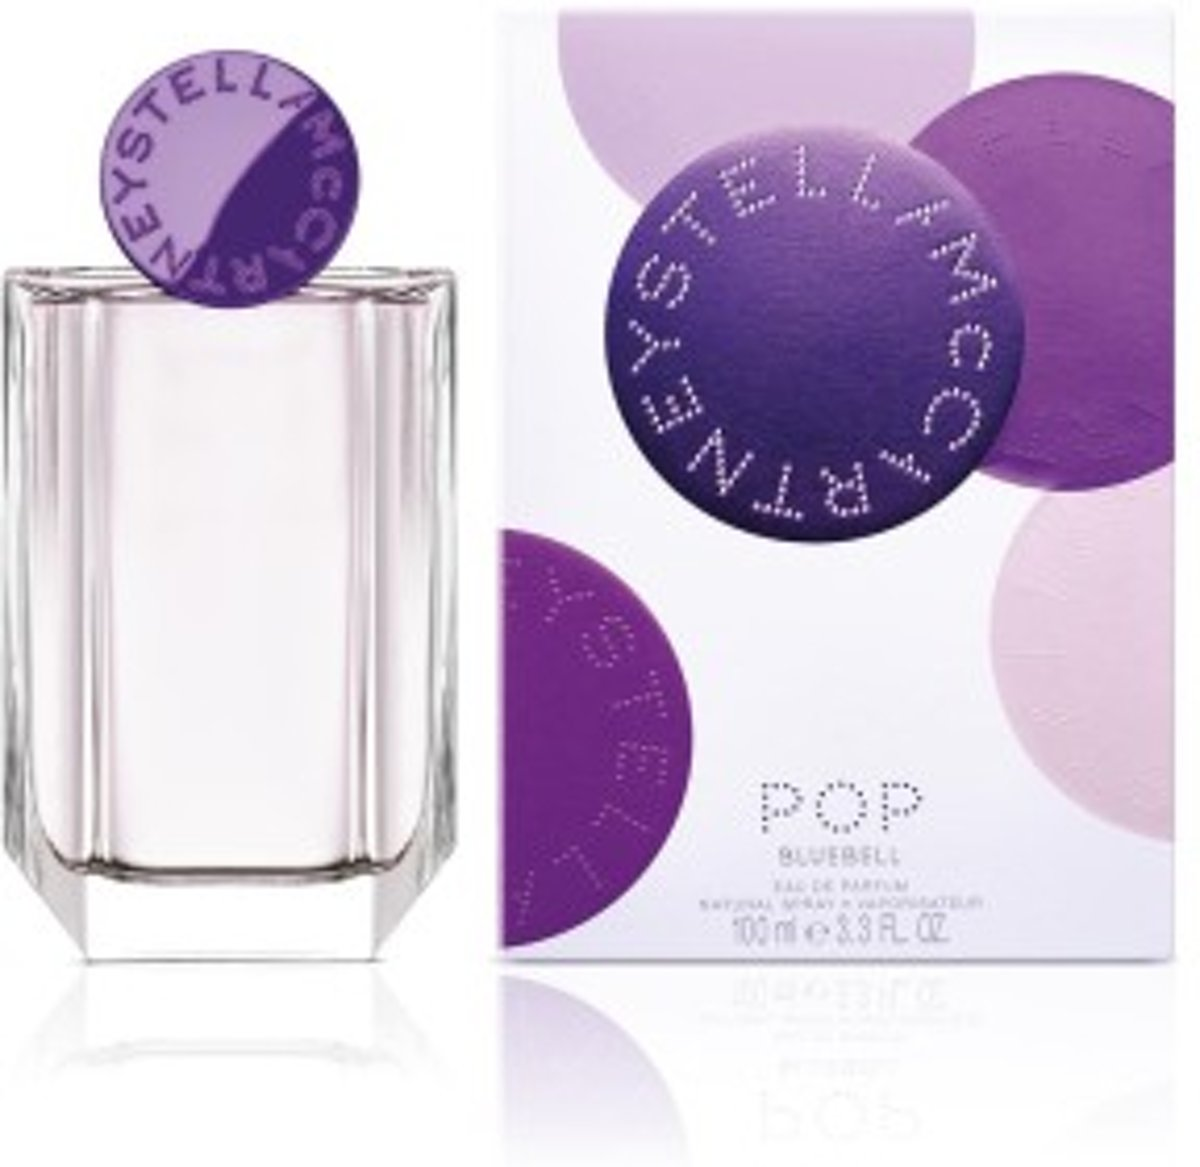 Stella McCartney Pop Bluebell - 30ml - Eau de parfum